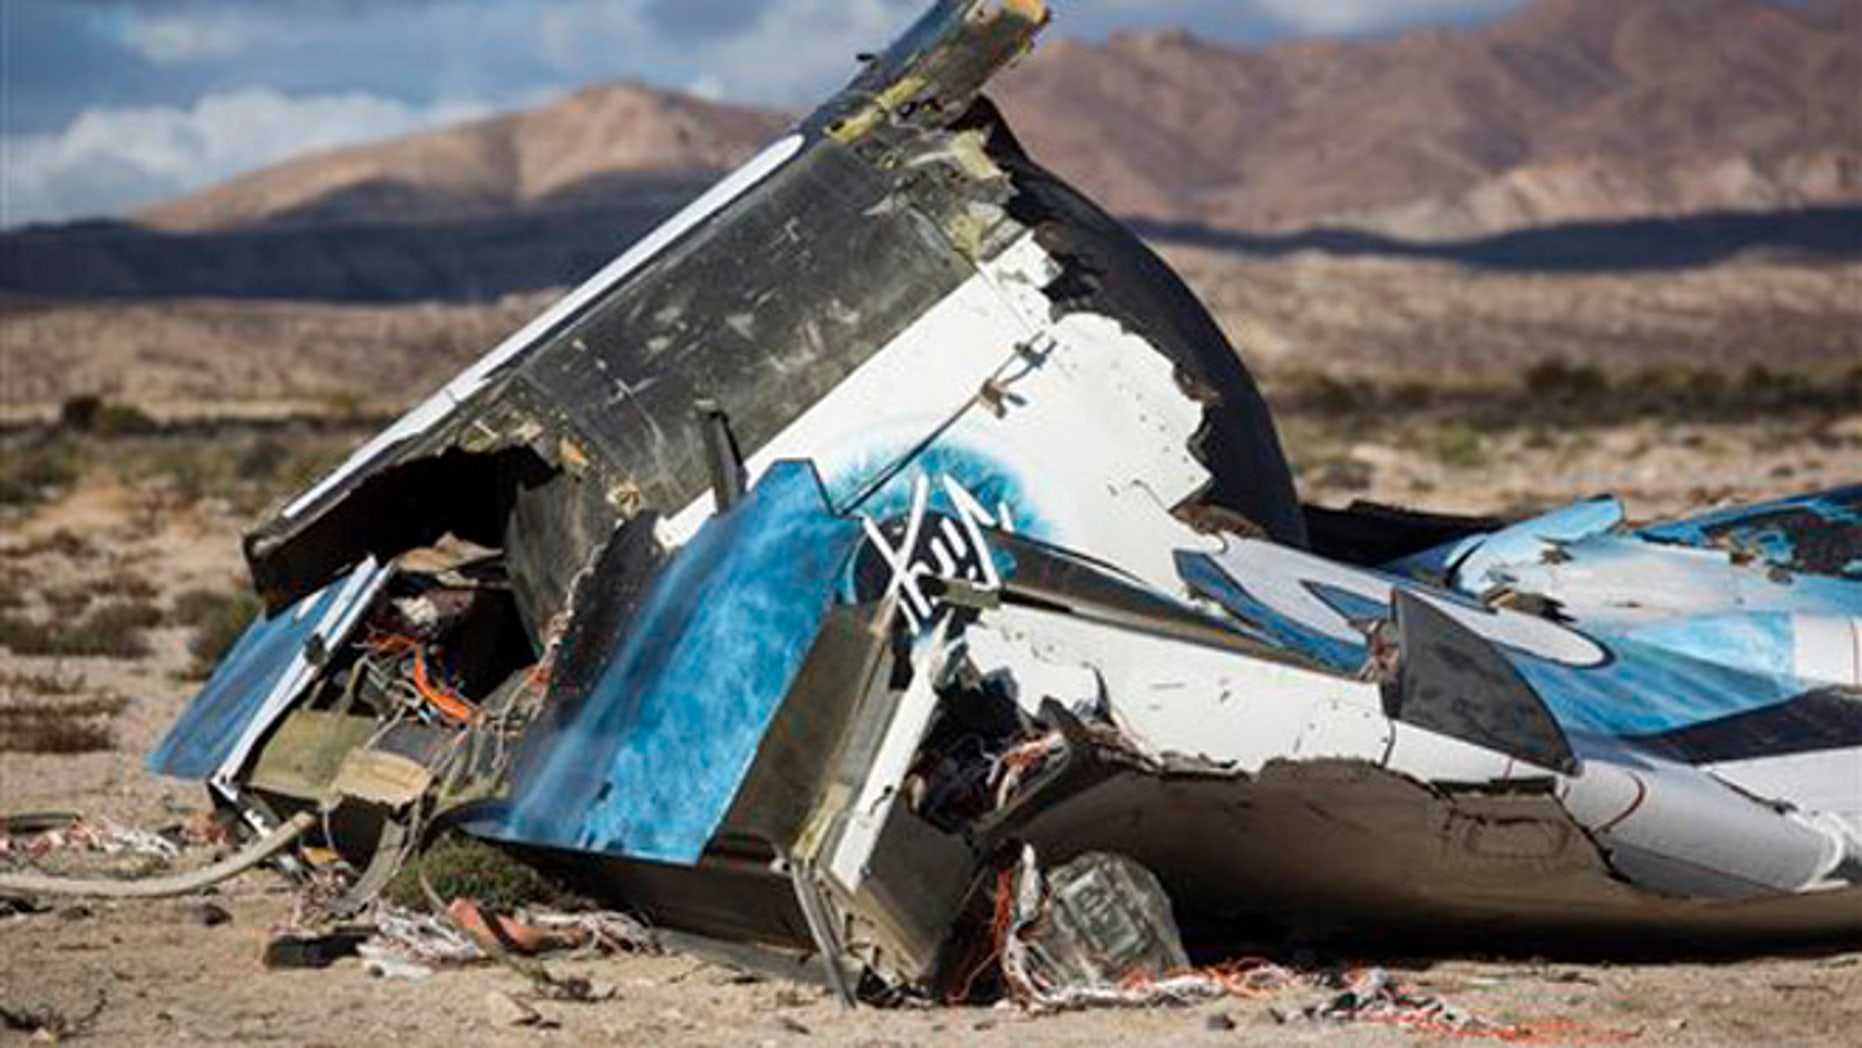 Nov. 1, 2014: In this file photo, wreckage lies near the site where a Virgin Galactic space tourism rocket, SpaceShipTwo, exploded and crashed in Mojave, Calif.